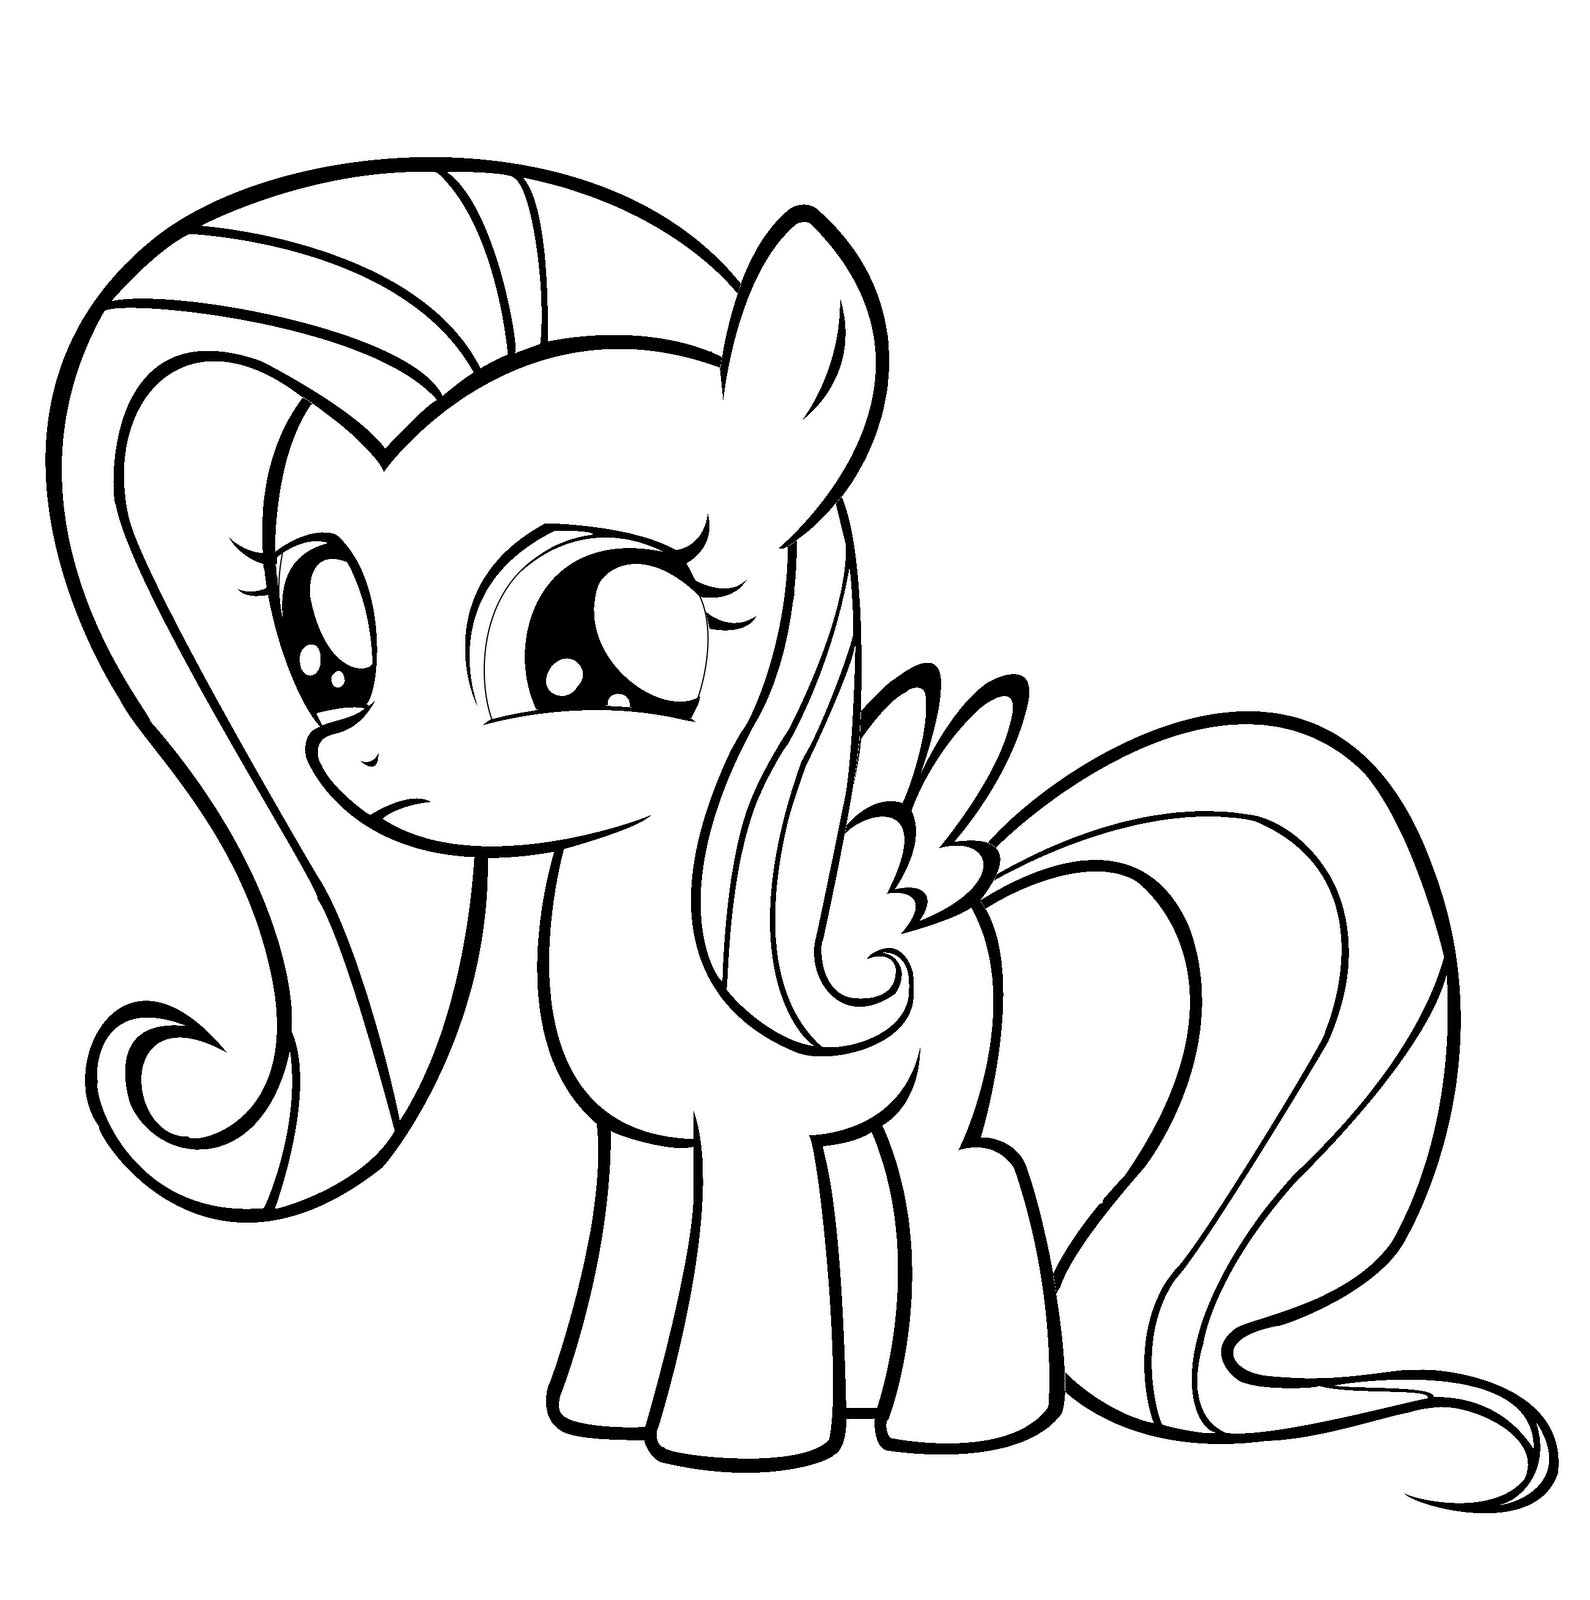 pony coloring pages to print my little pony coloring page photo 22 unicorn coloring pony coloring to print pages